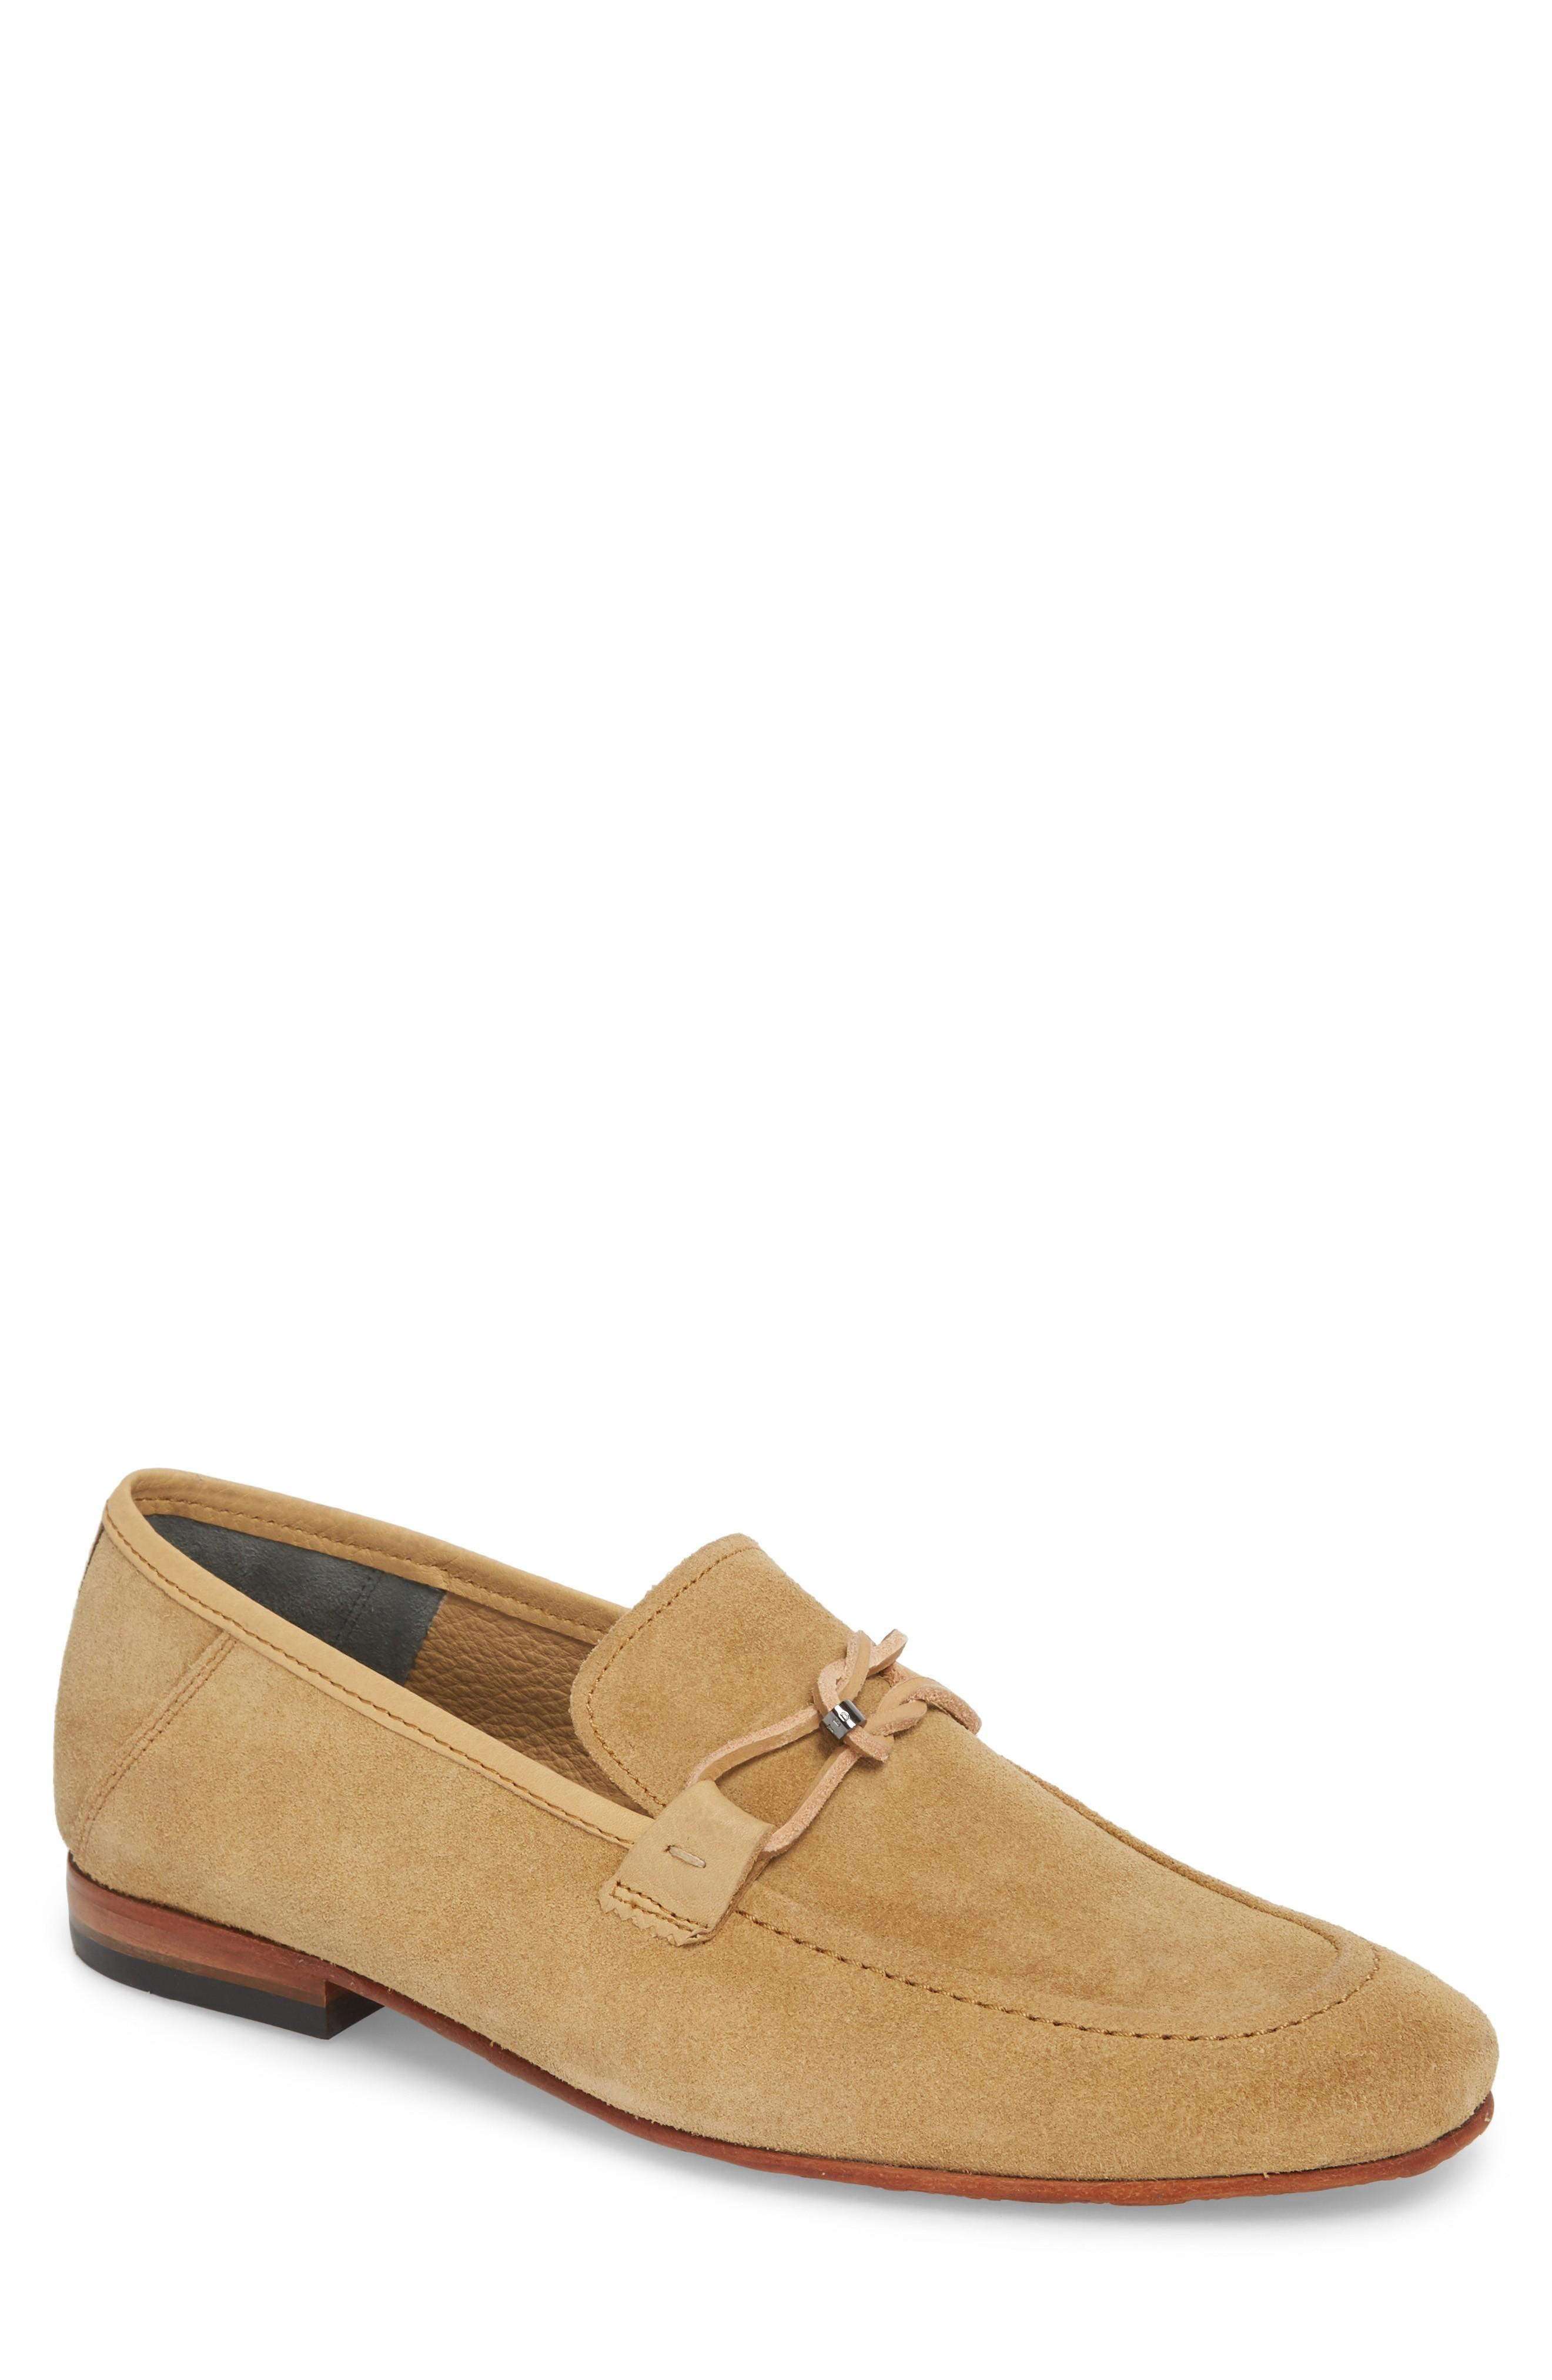 Ted Baker Hoppken Convertible Knotted Loafer In Sand Suede